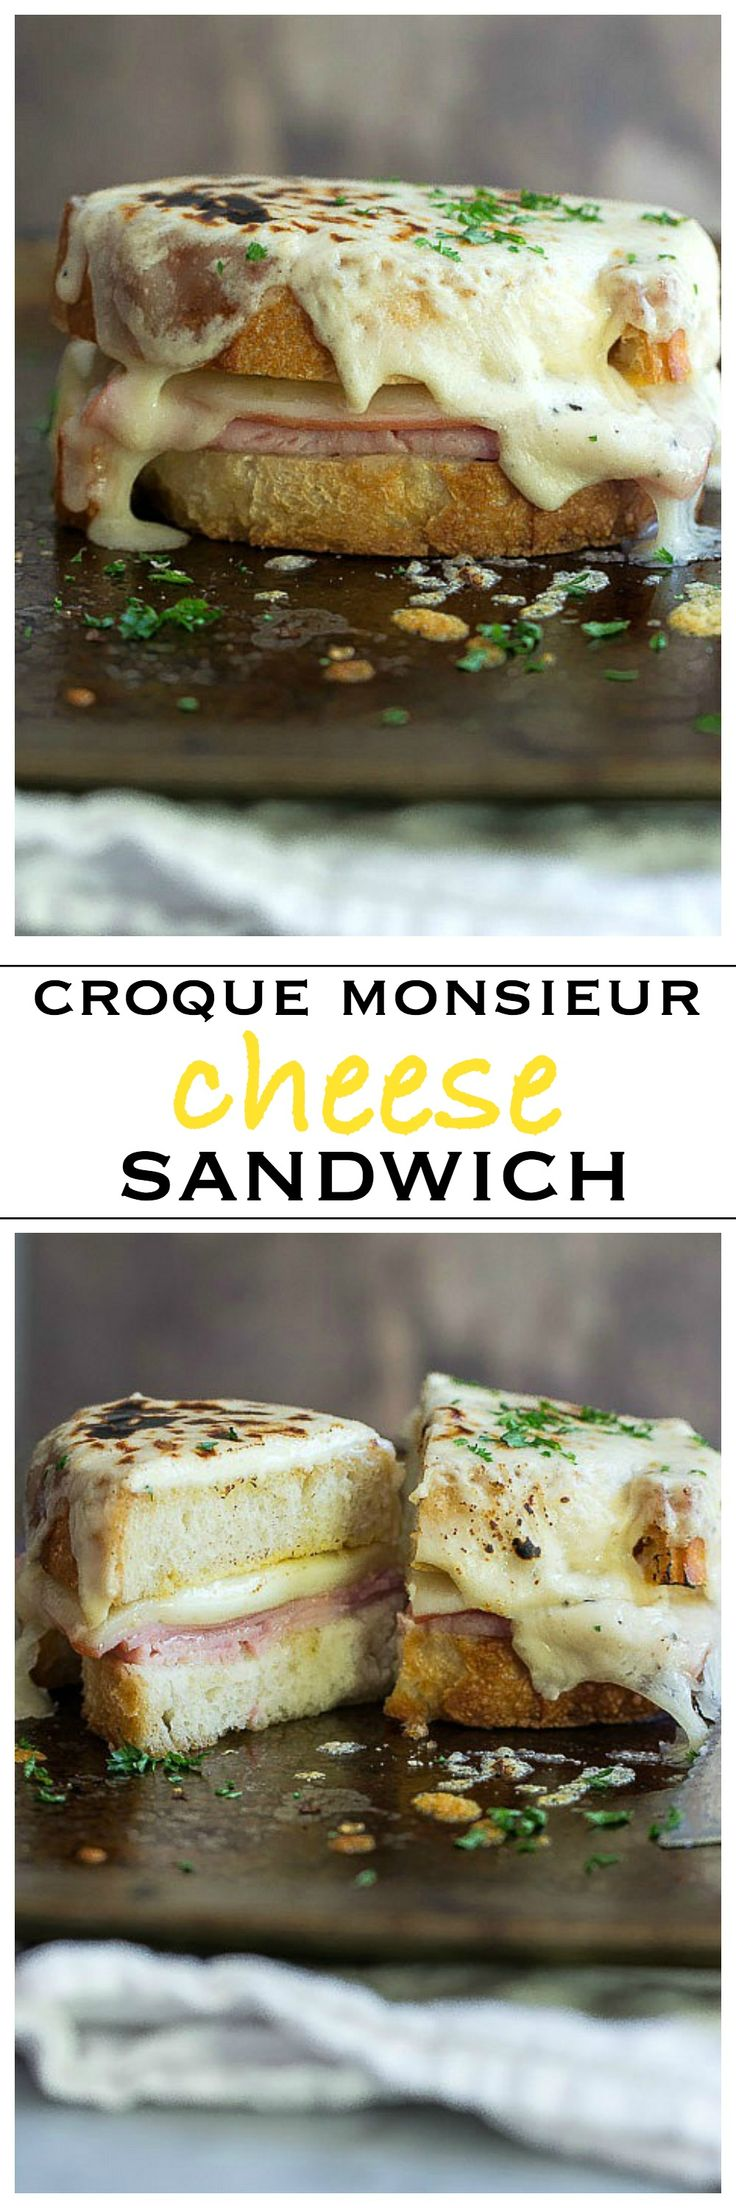 The Ultimate Croque Monsieur Grilled Cheese Sandwich | Foodness Gracious